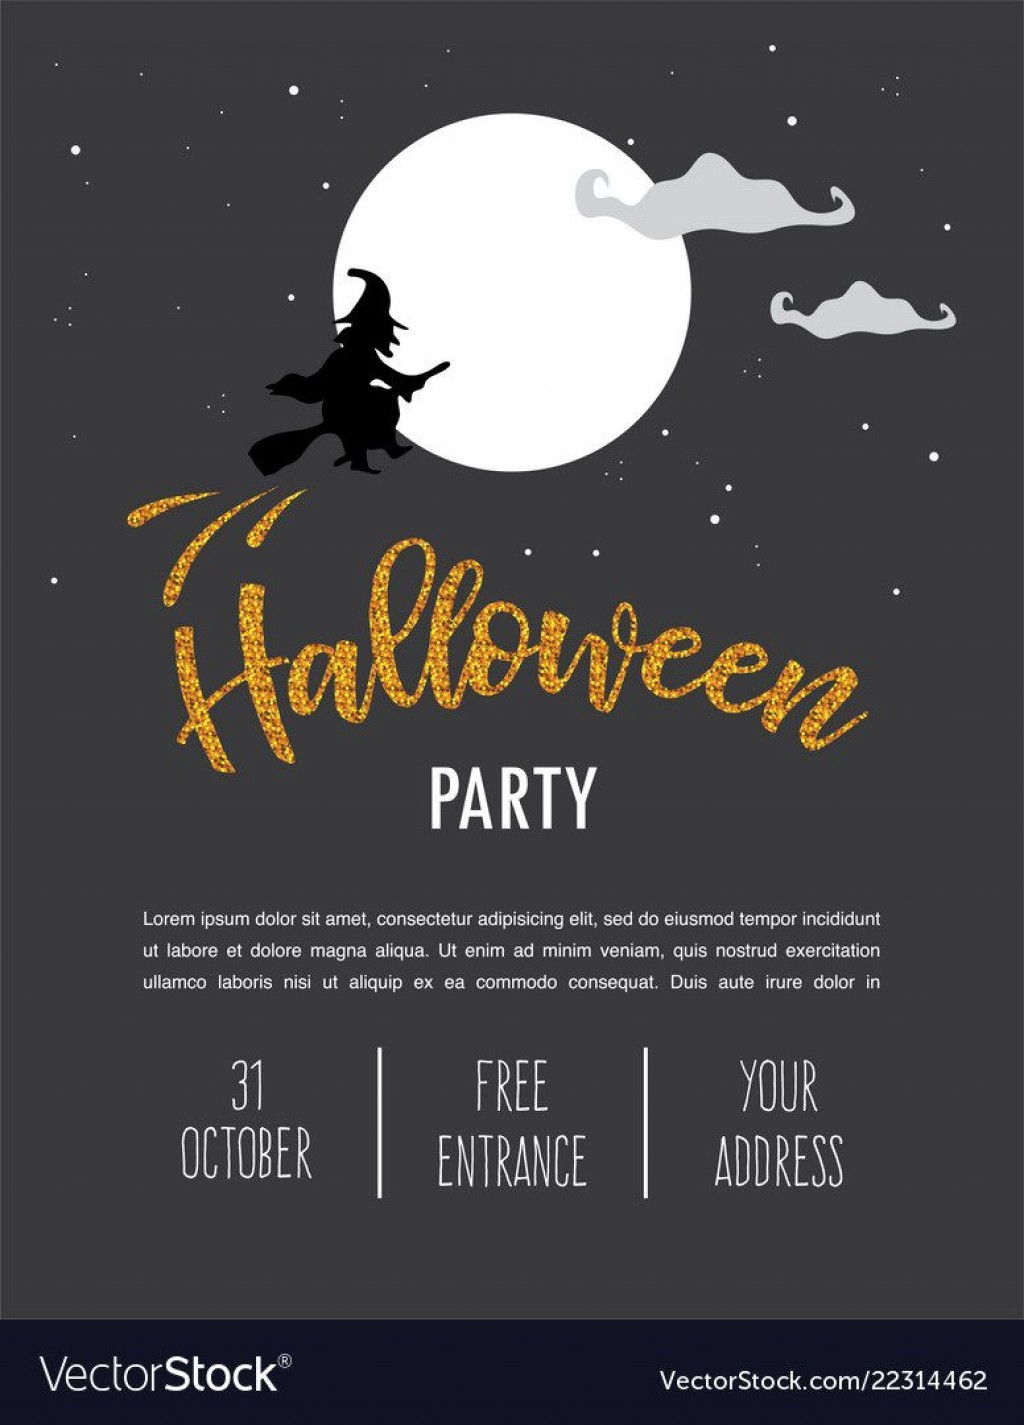 008 Frightening Halloween Party Invitation Template Highest Clarity  Templates Scary SpookyLarge